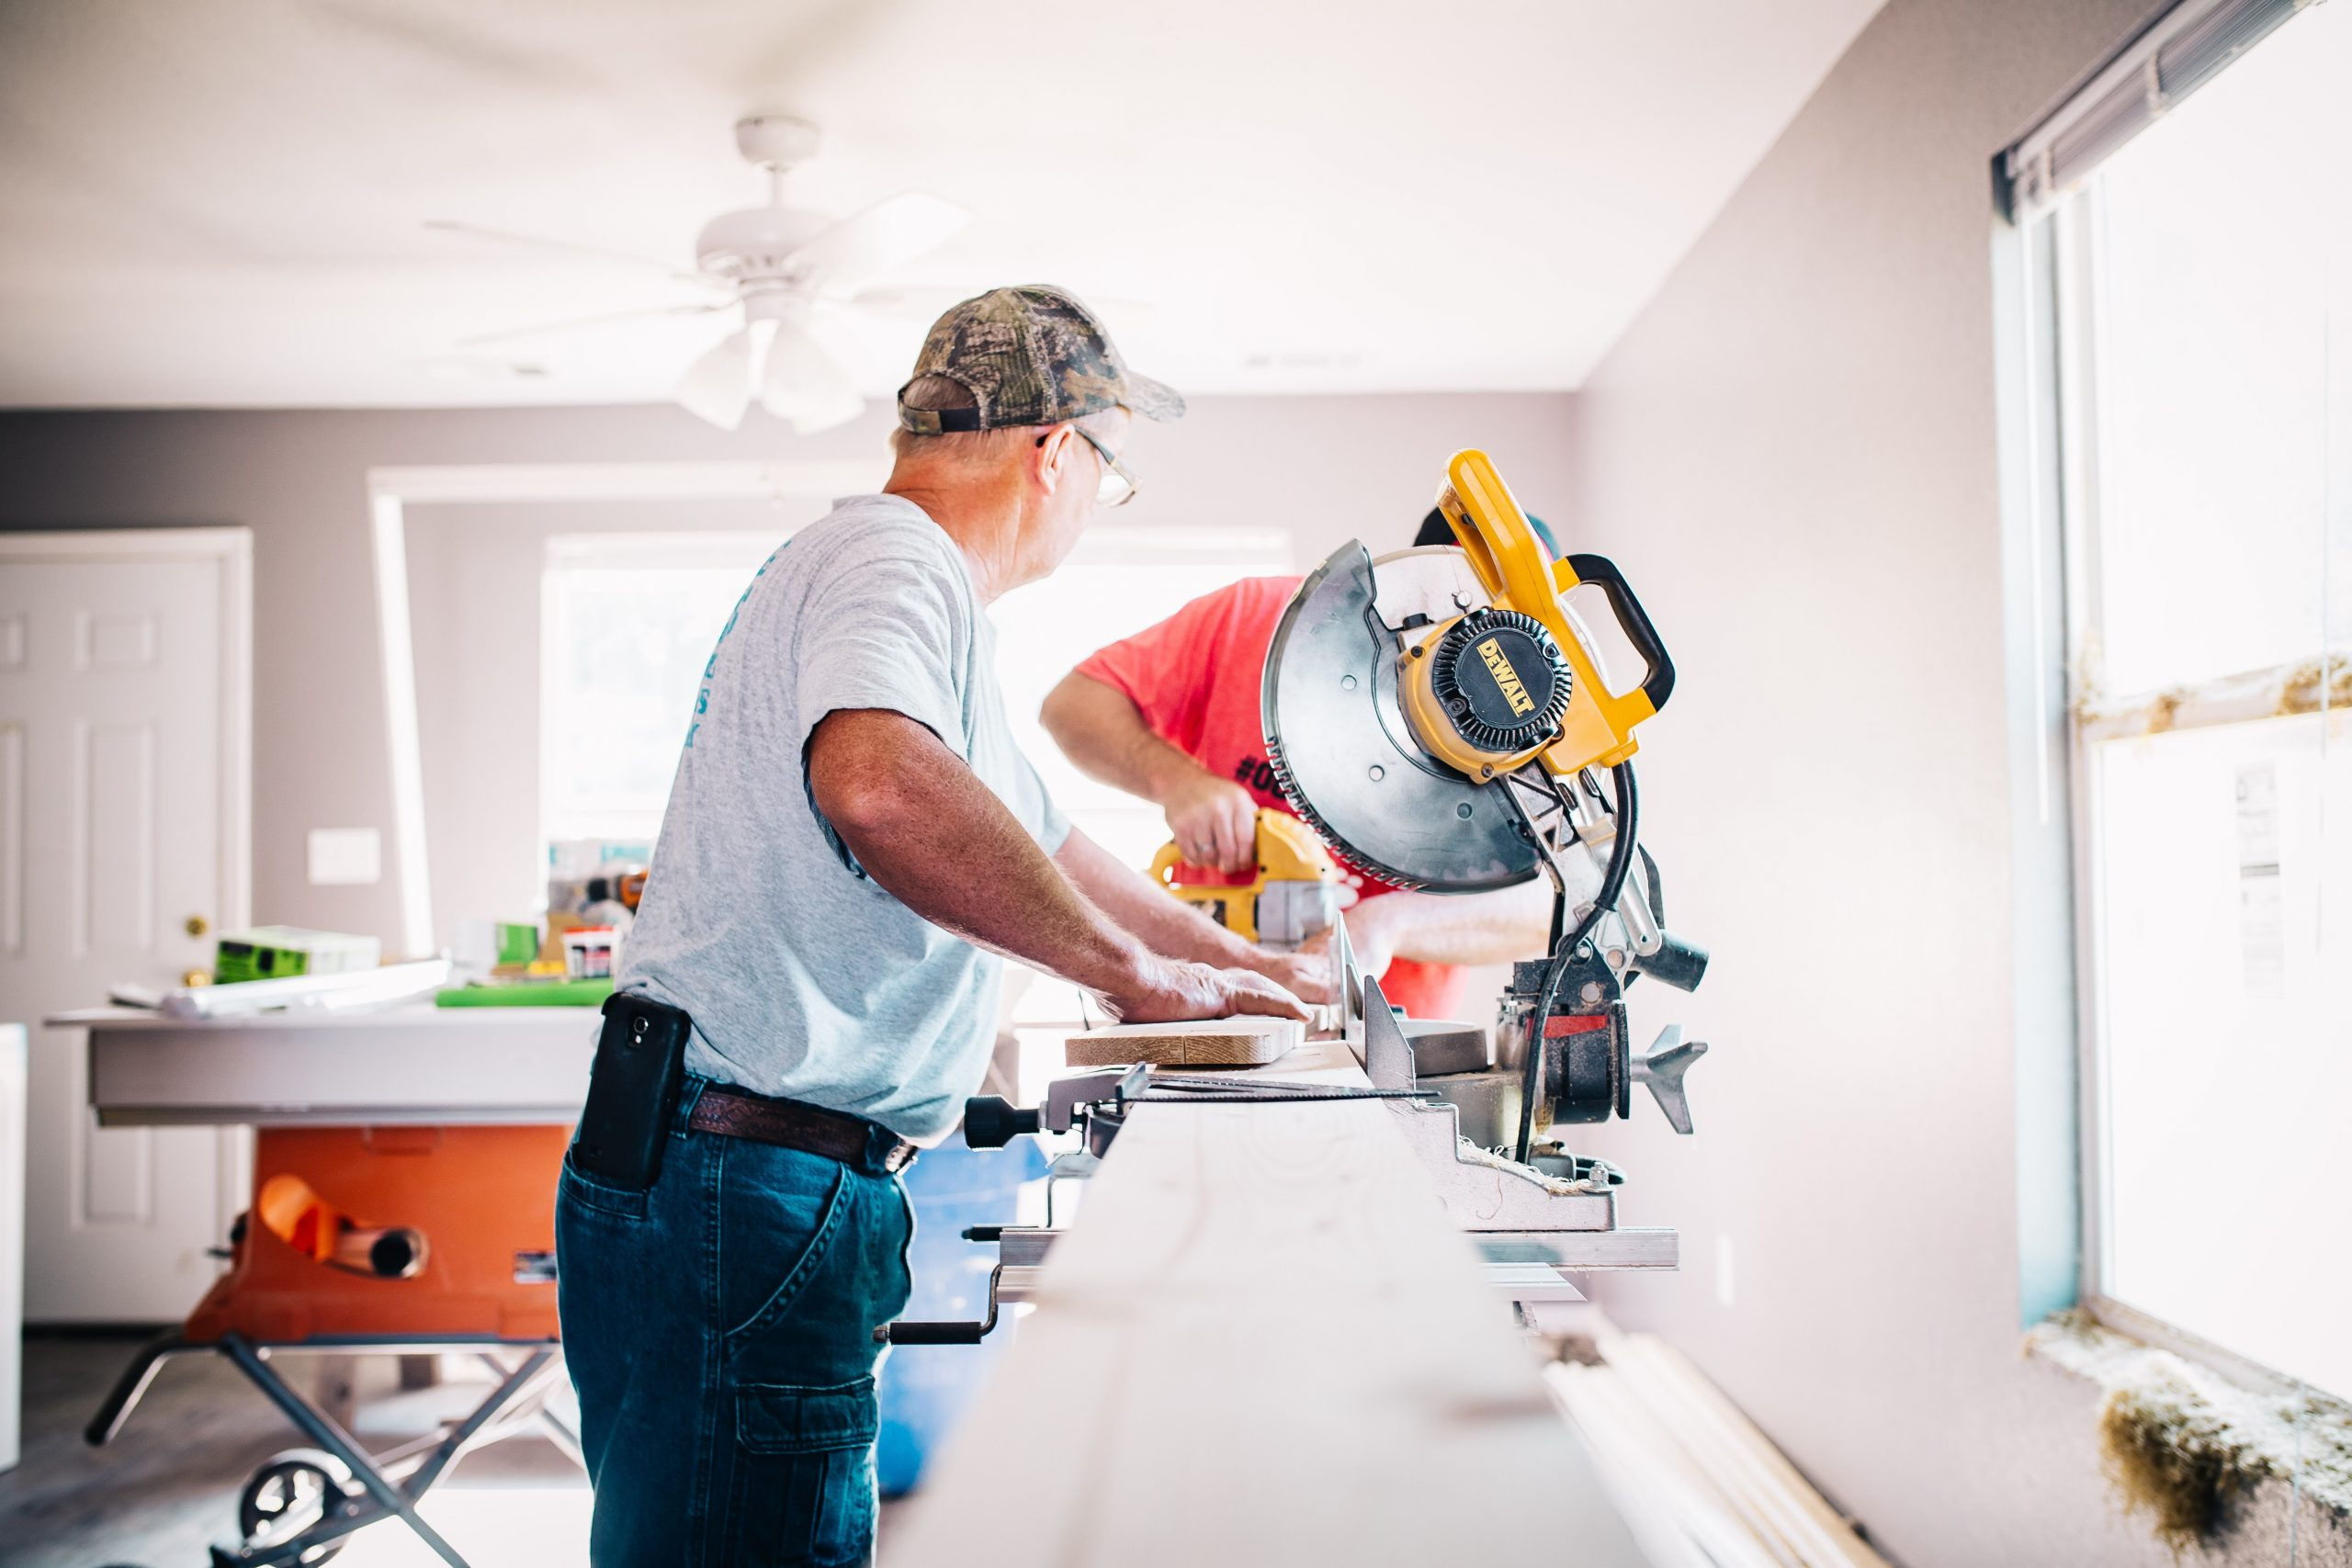 Tips For Being Your Own Home Improvement Handyman